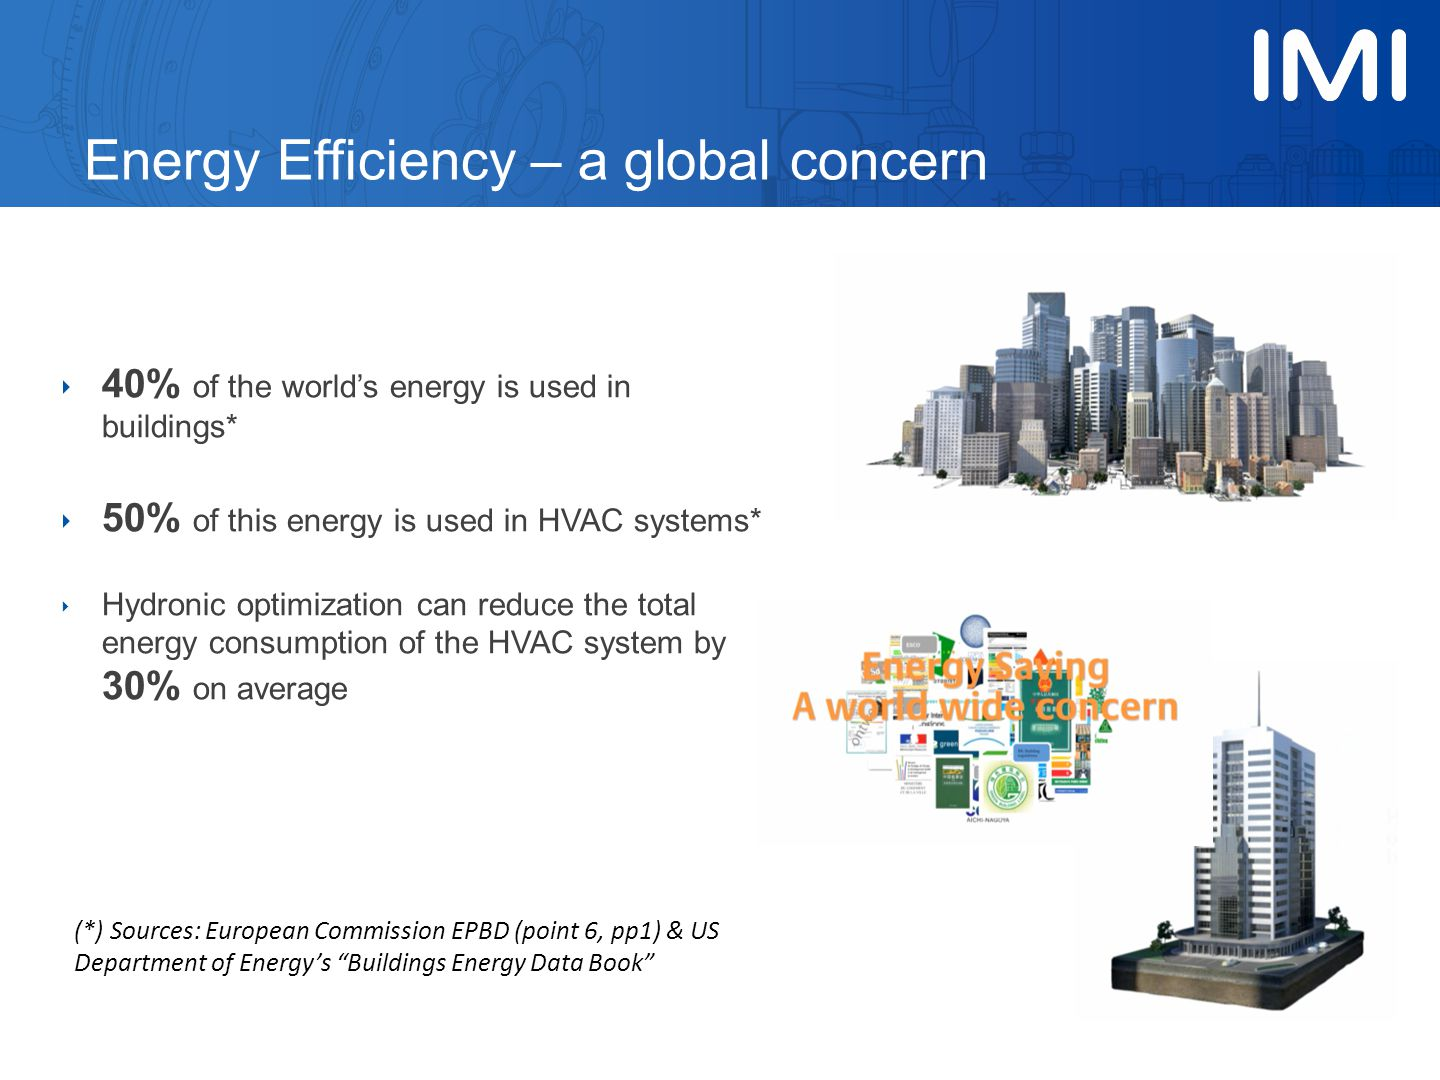 Energy Efficiency – a global concern ‣ 40% of the world's energy is used in buildings* ‣ 50% of this energy is used in HVAC systems* ‣ Hydronic optimization can reduce the total energy consumption of the HVAC system by 30% on average (*) Sources: European Commission EPBD (point 6, pp1) & US Department of Energy's Buildings Energy Data Book